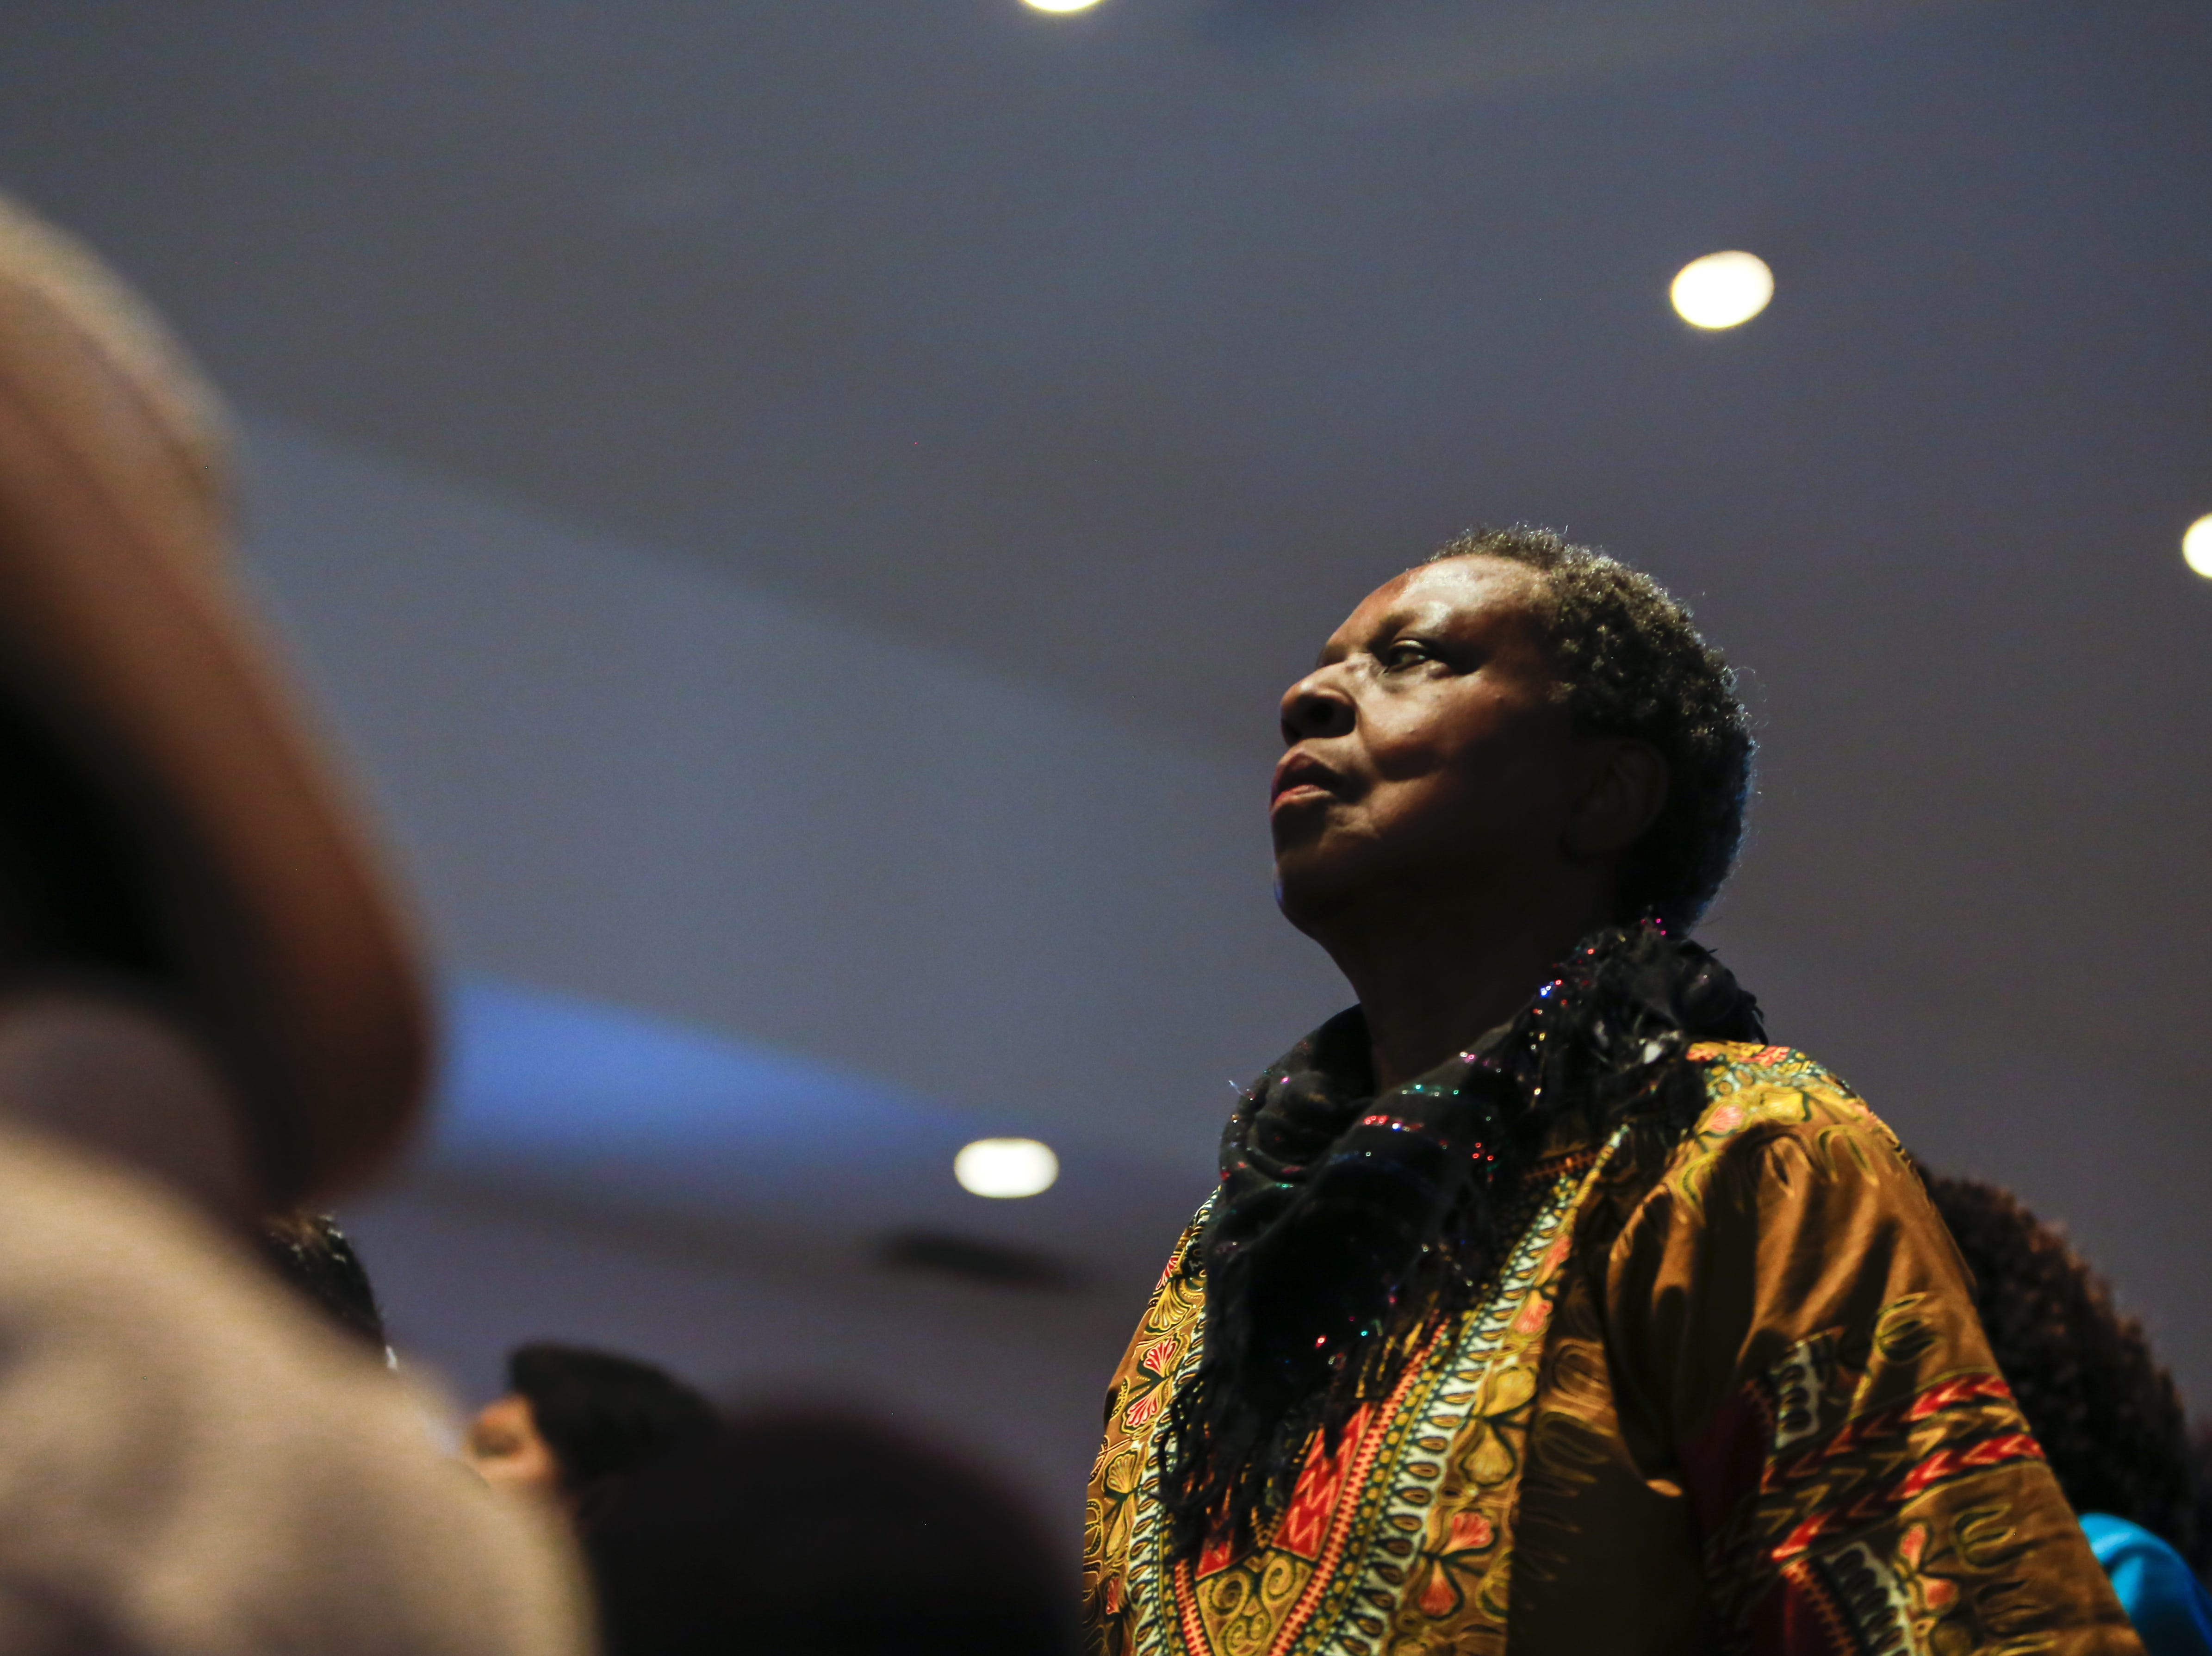 Annie Hargrove stands during a Sunday morning service at First Institutional Baptist Church on Jan. 20, 2019.